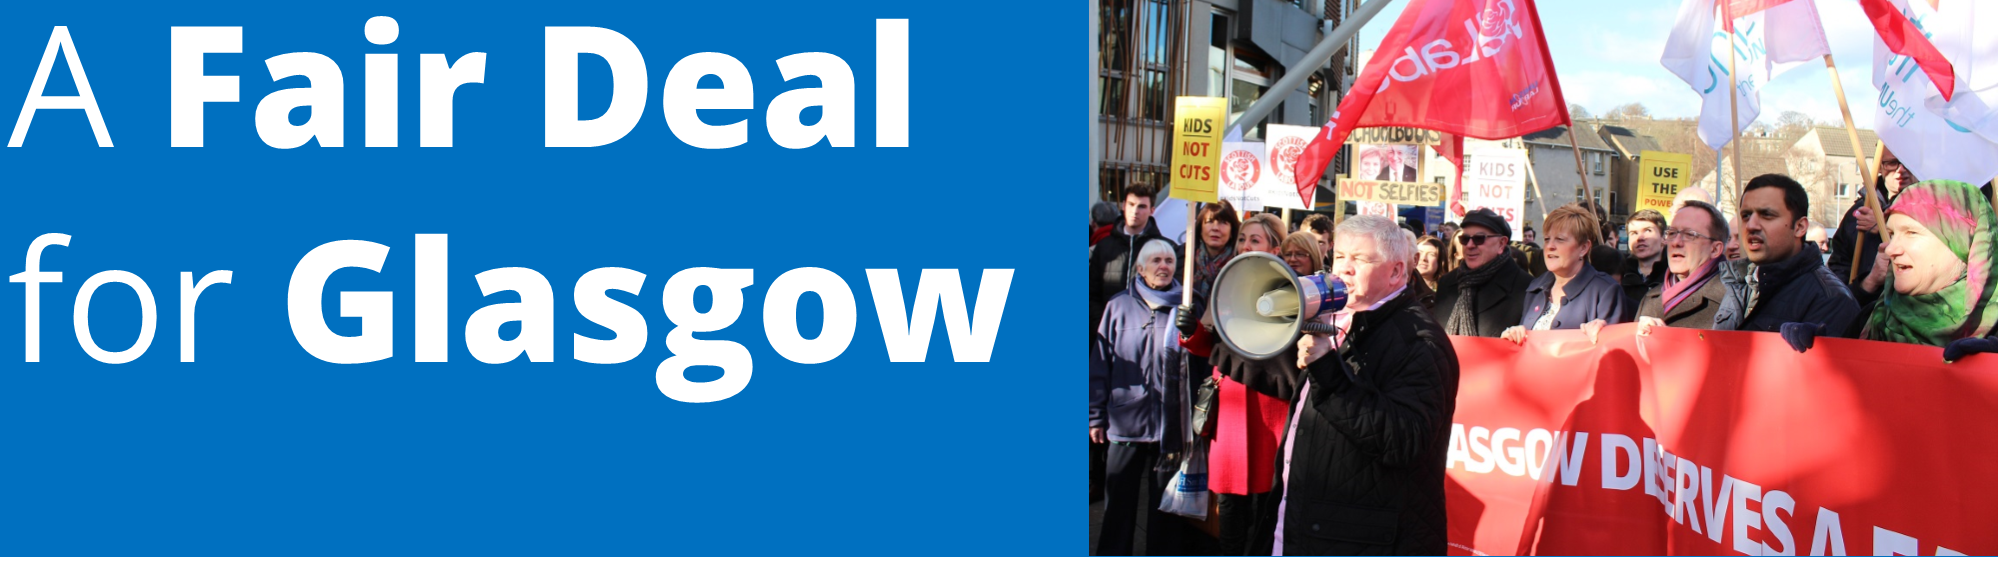 A Fair Deal for Glasgow